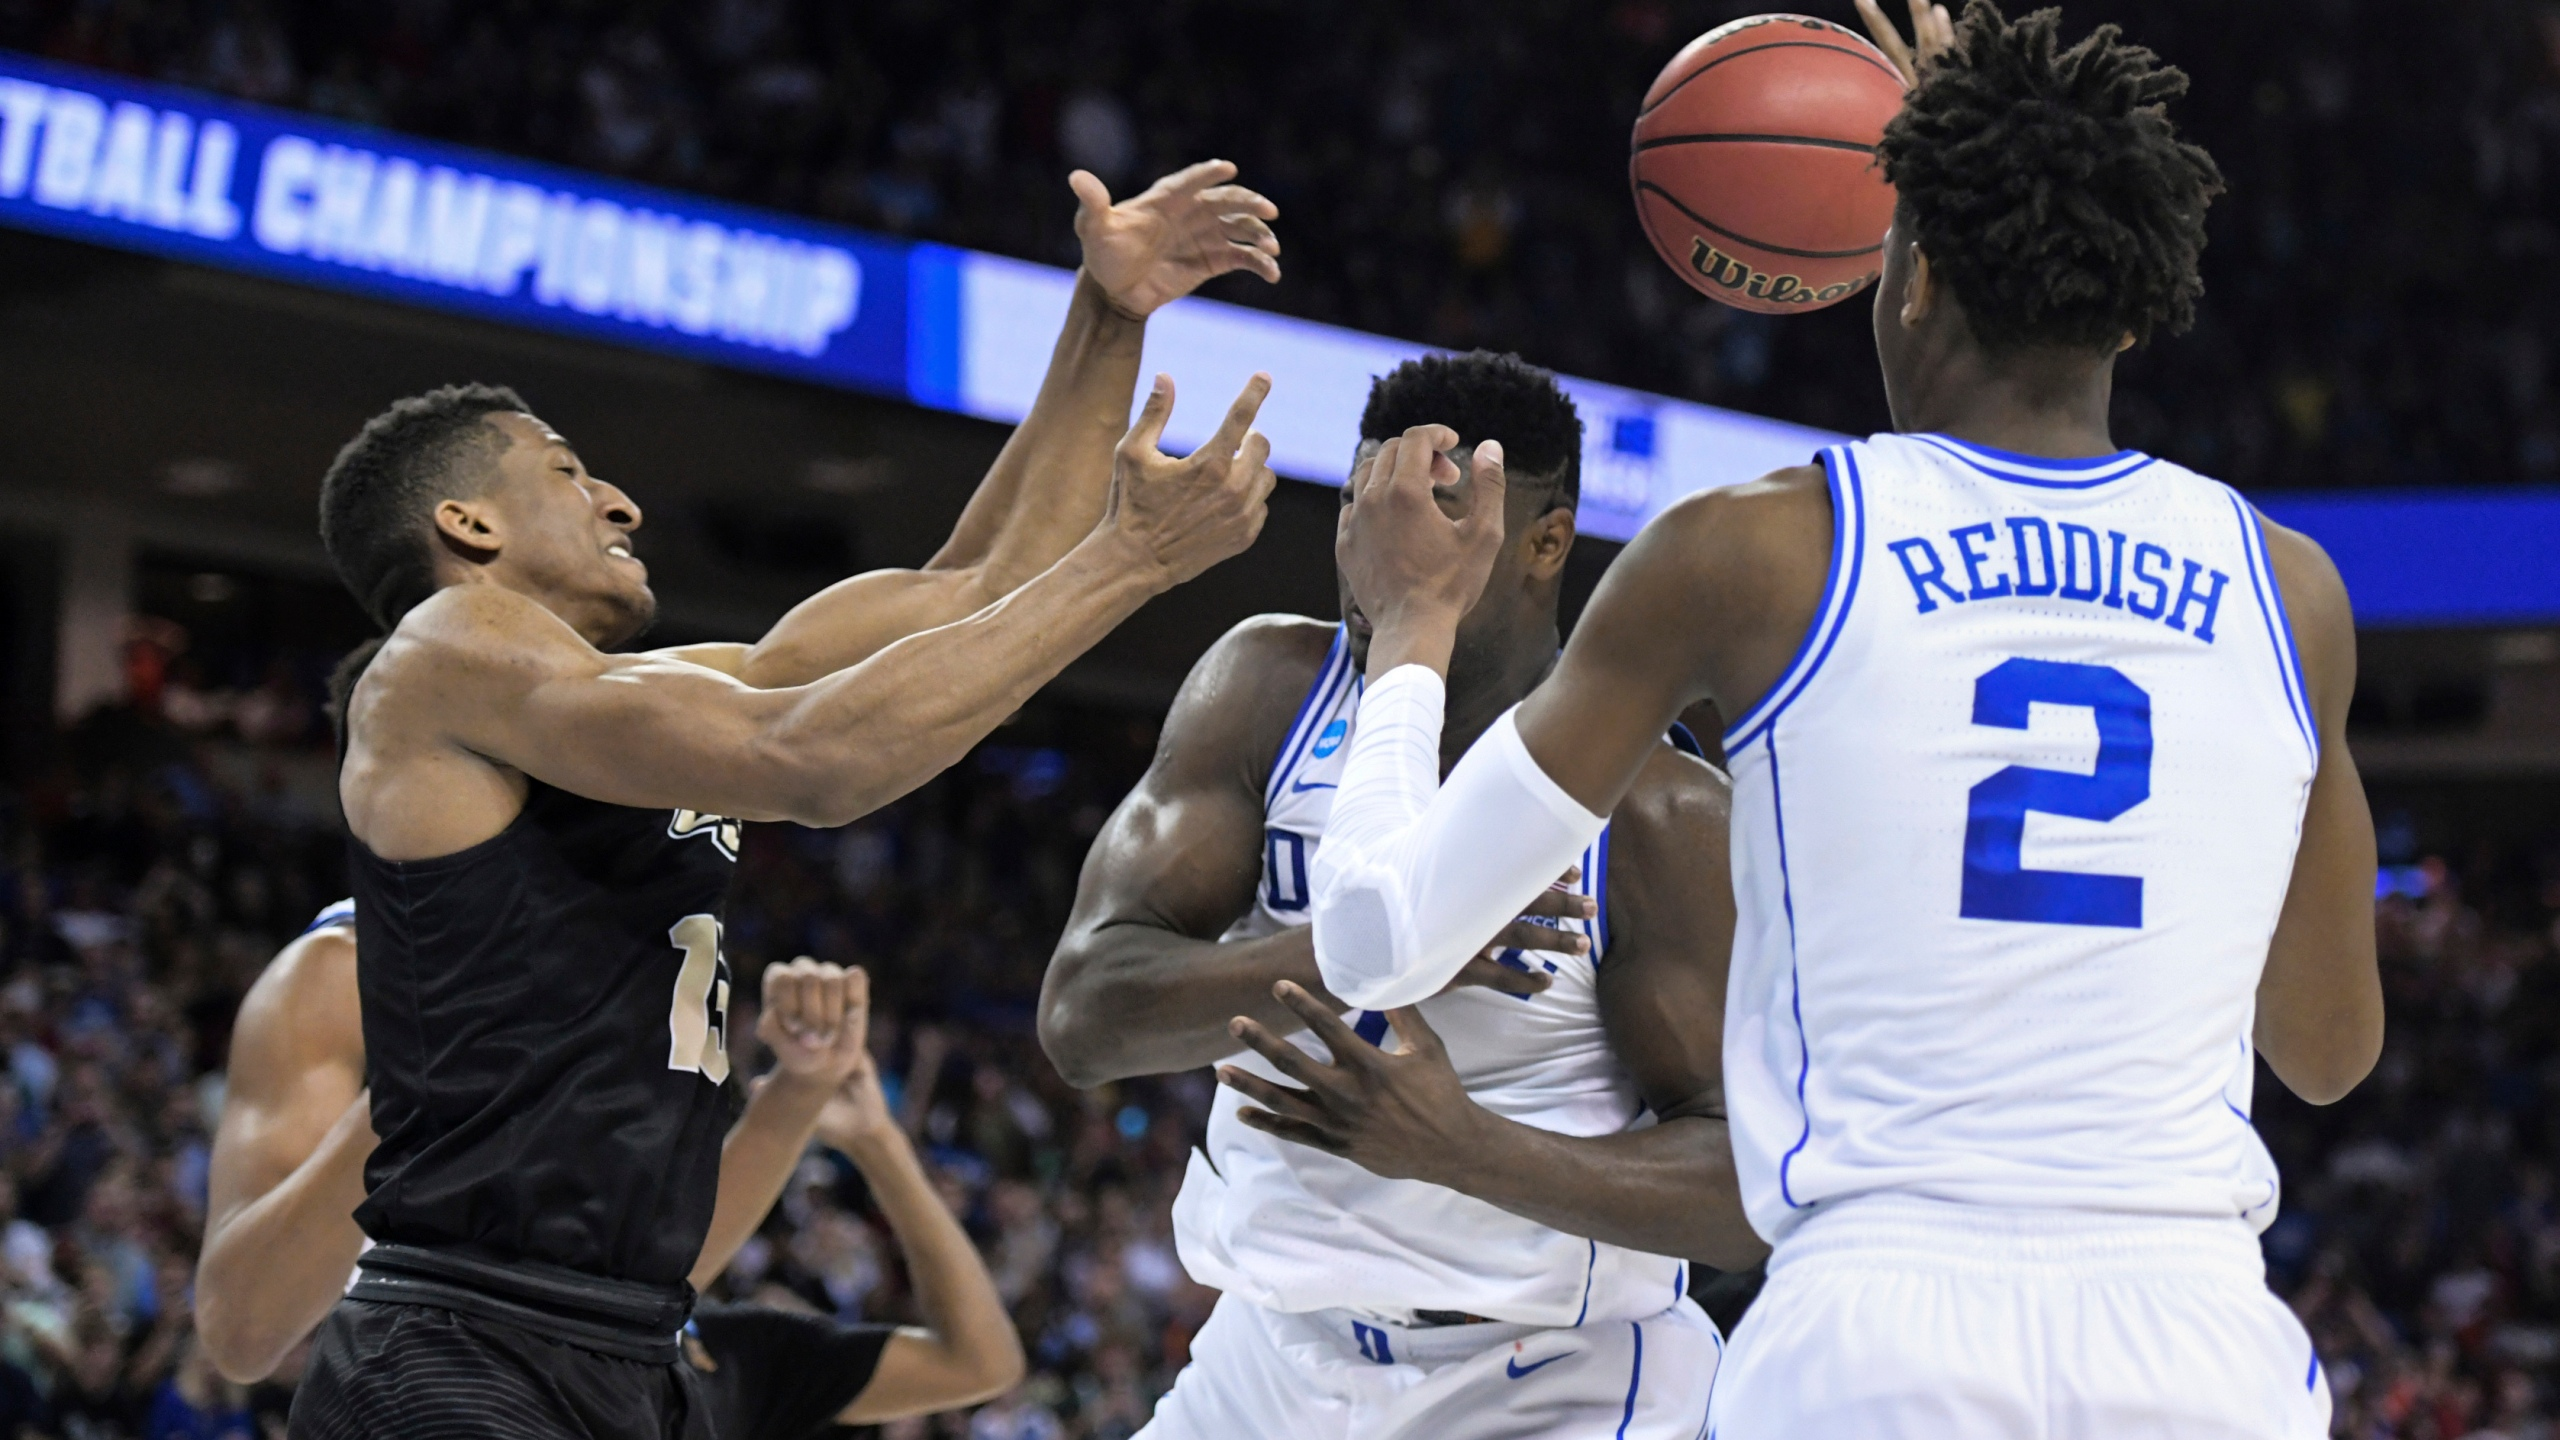 NCAA_UCF_Duke_Basketball_79749-159532.jpg83267707